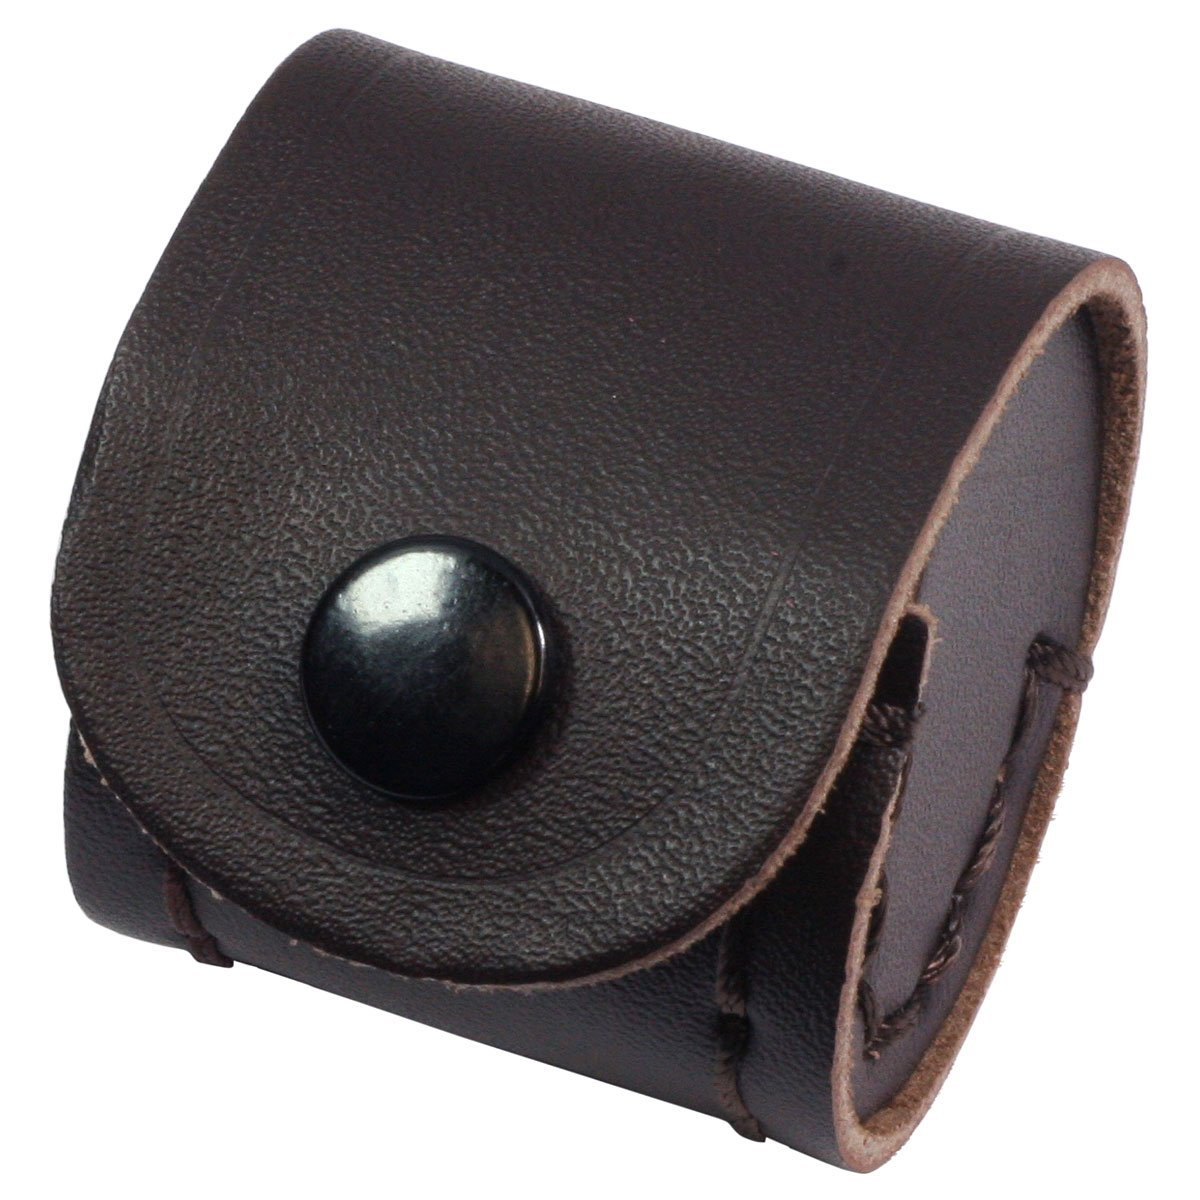 HTS 203E0 20x 21mm Chrome Triplet Jewelers Loupe With Leather Case